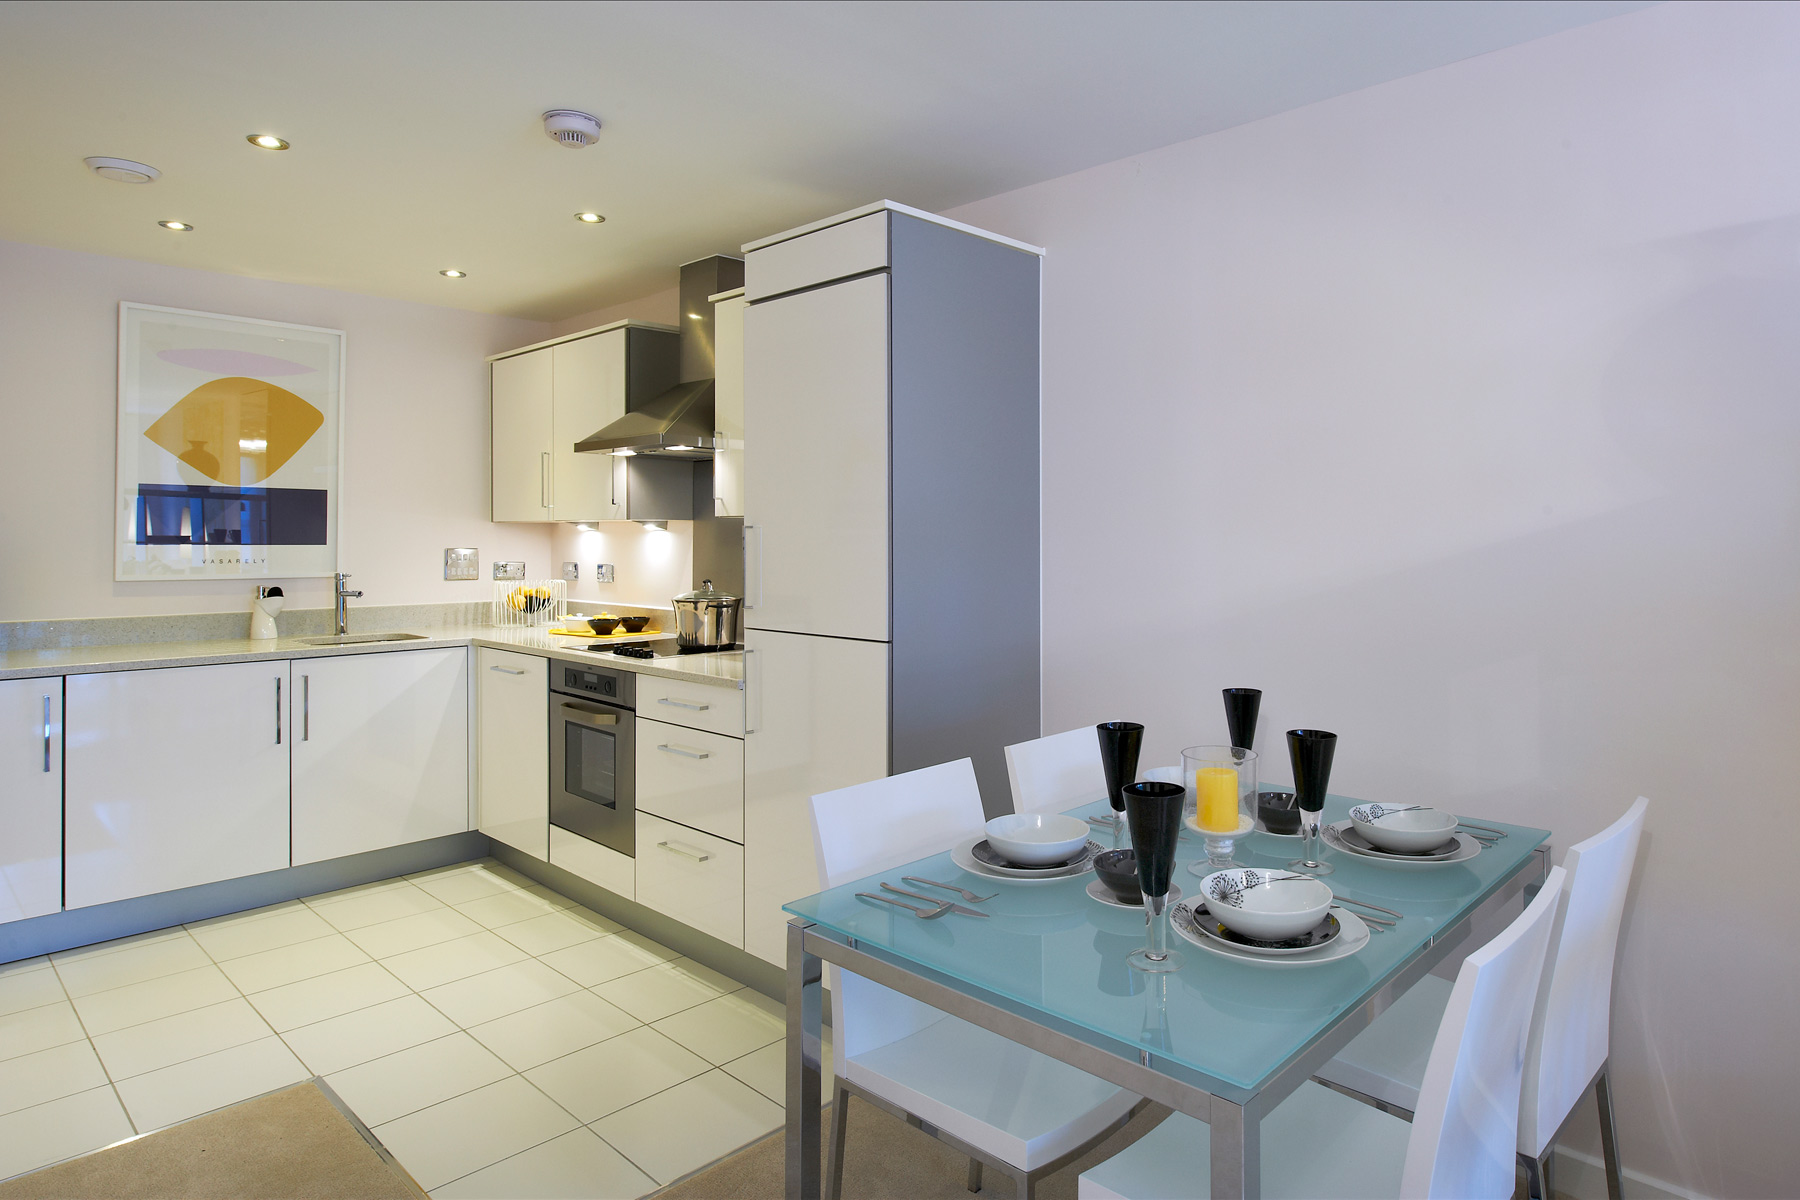 A typical Taylor Wimpey apartment kitchen/dining area.